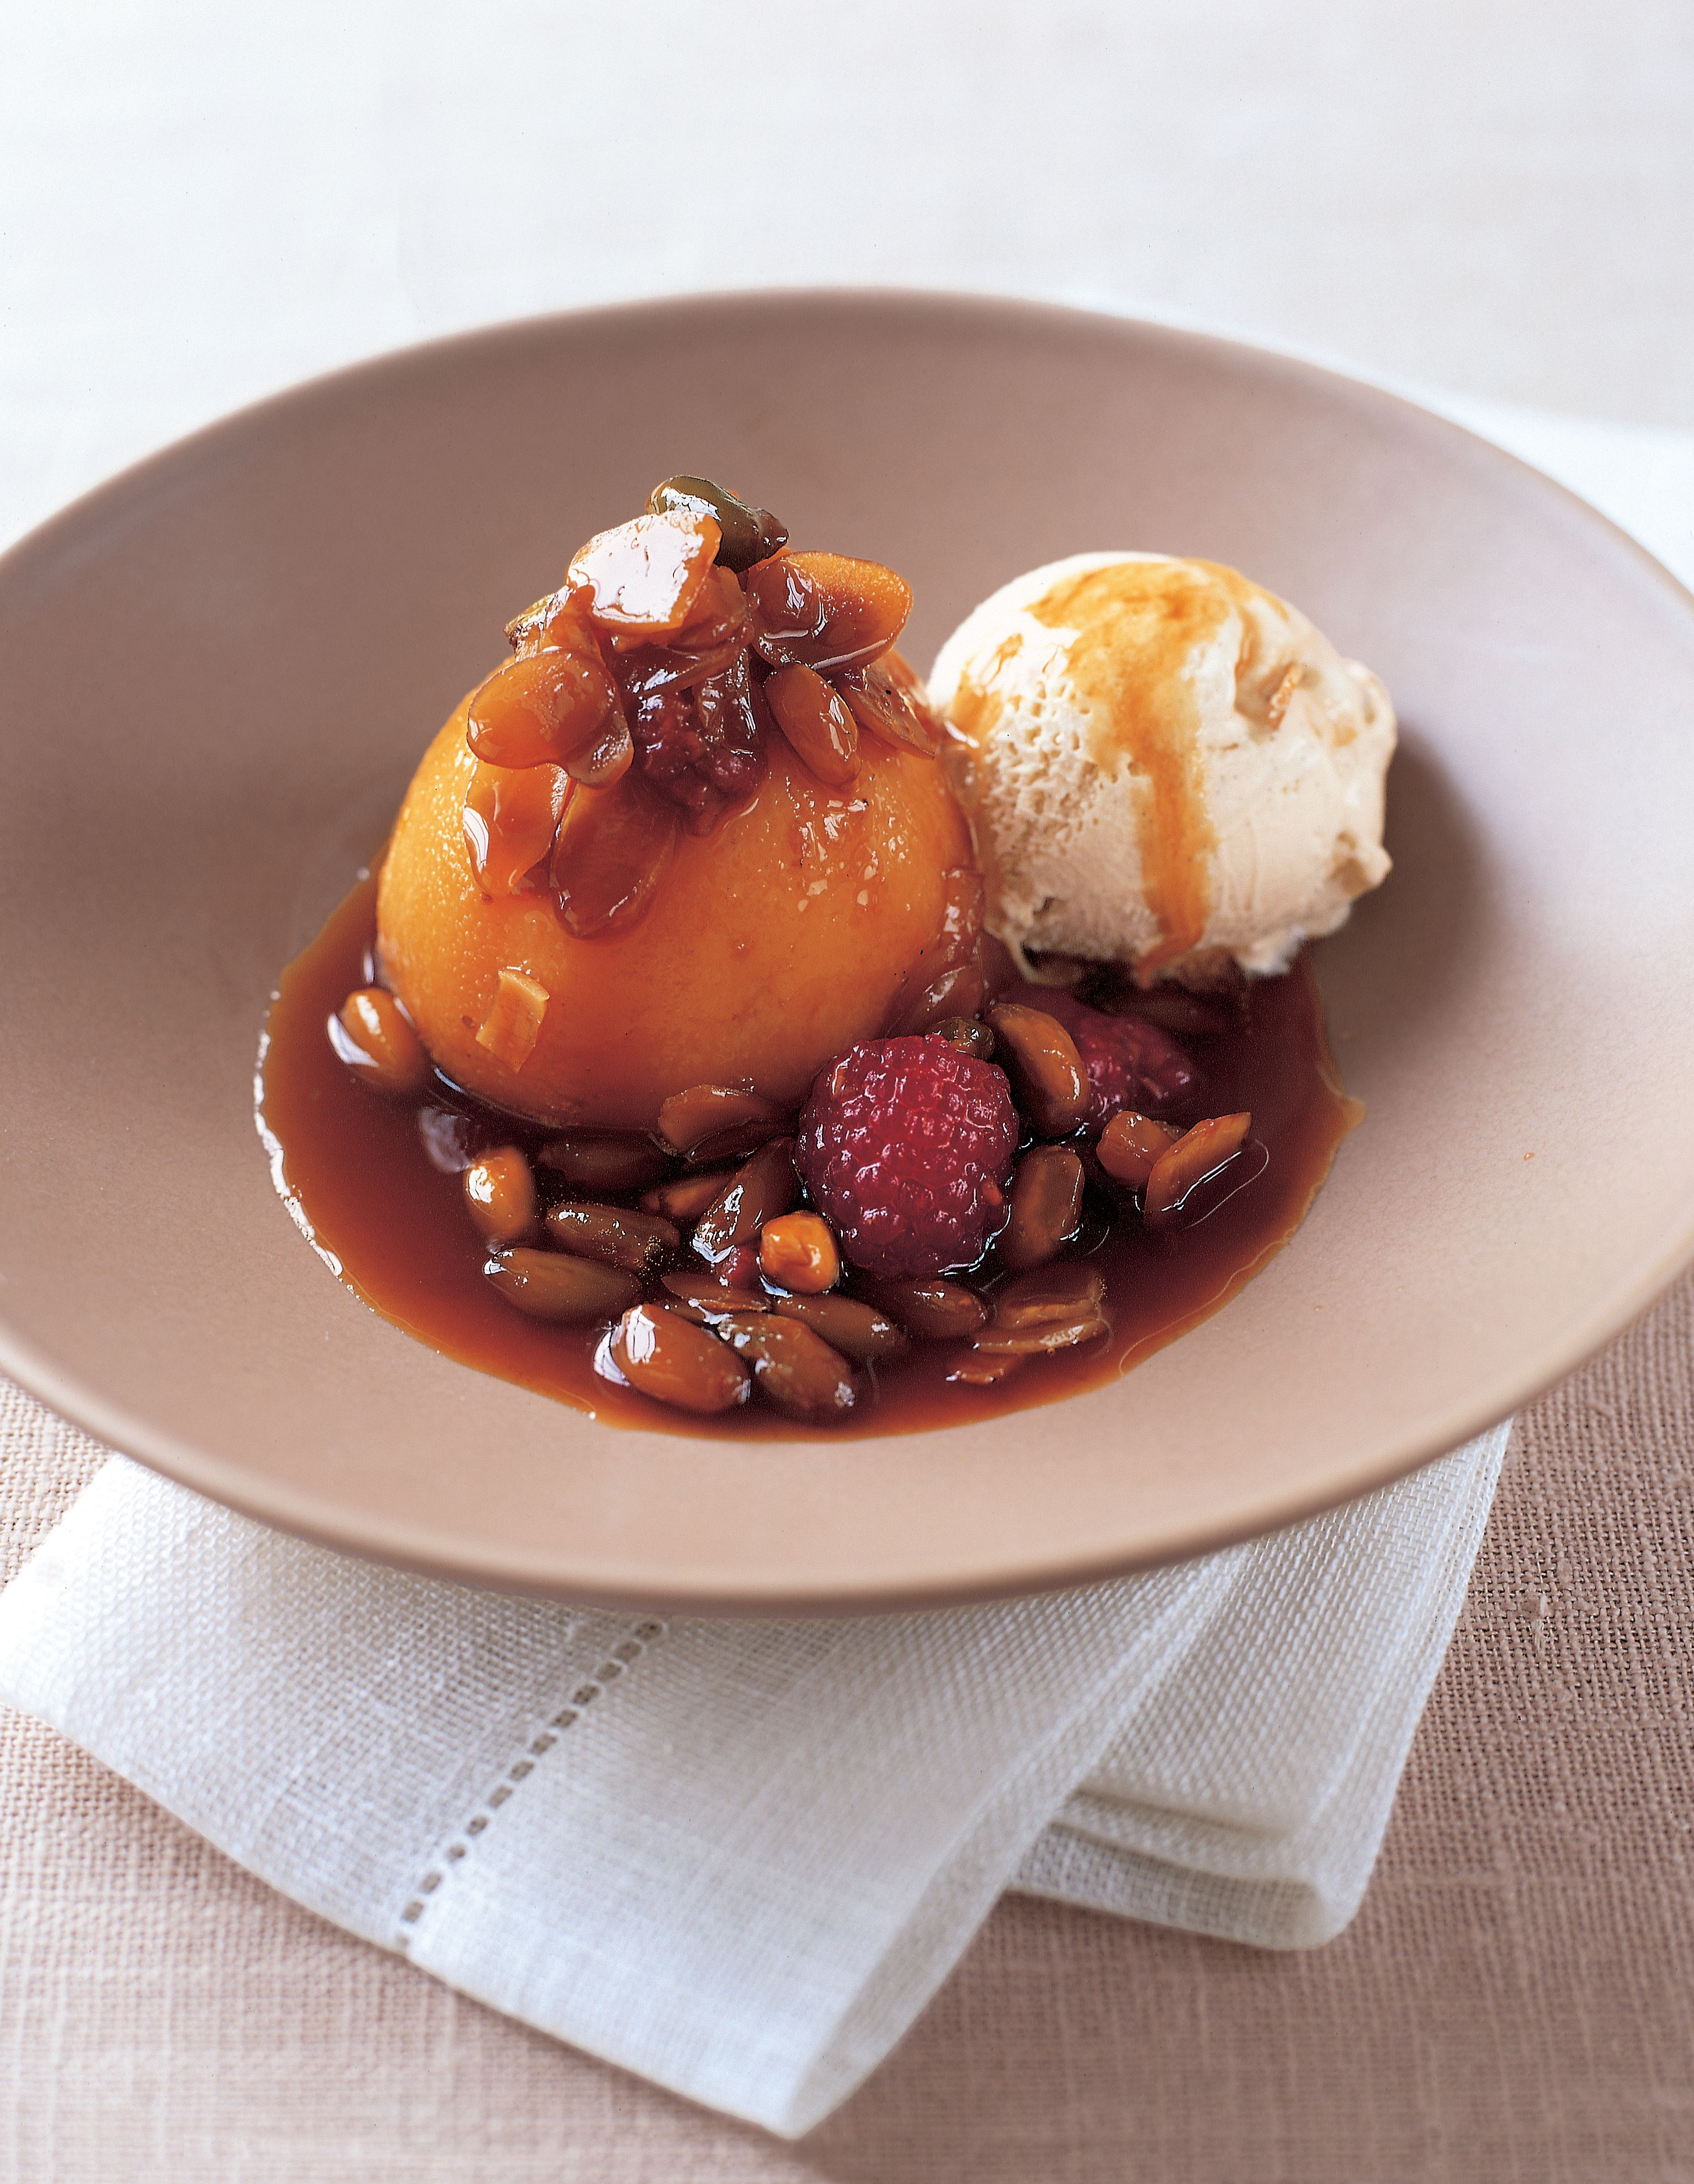 Slow-roasted peaches with orange caramel sauce